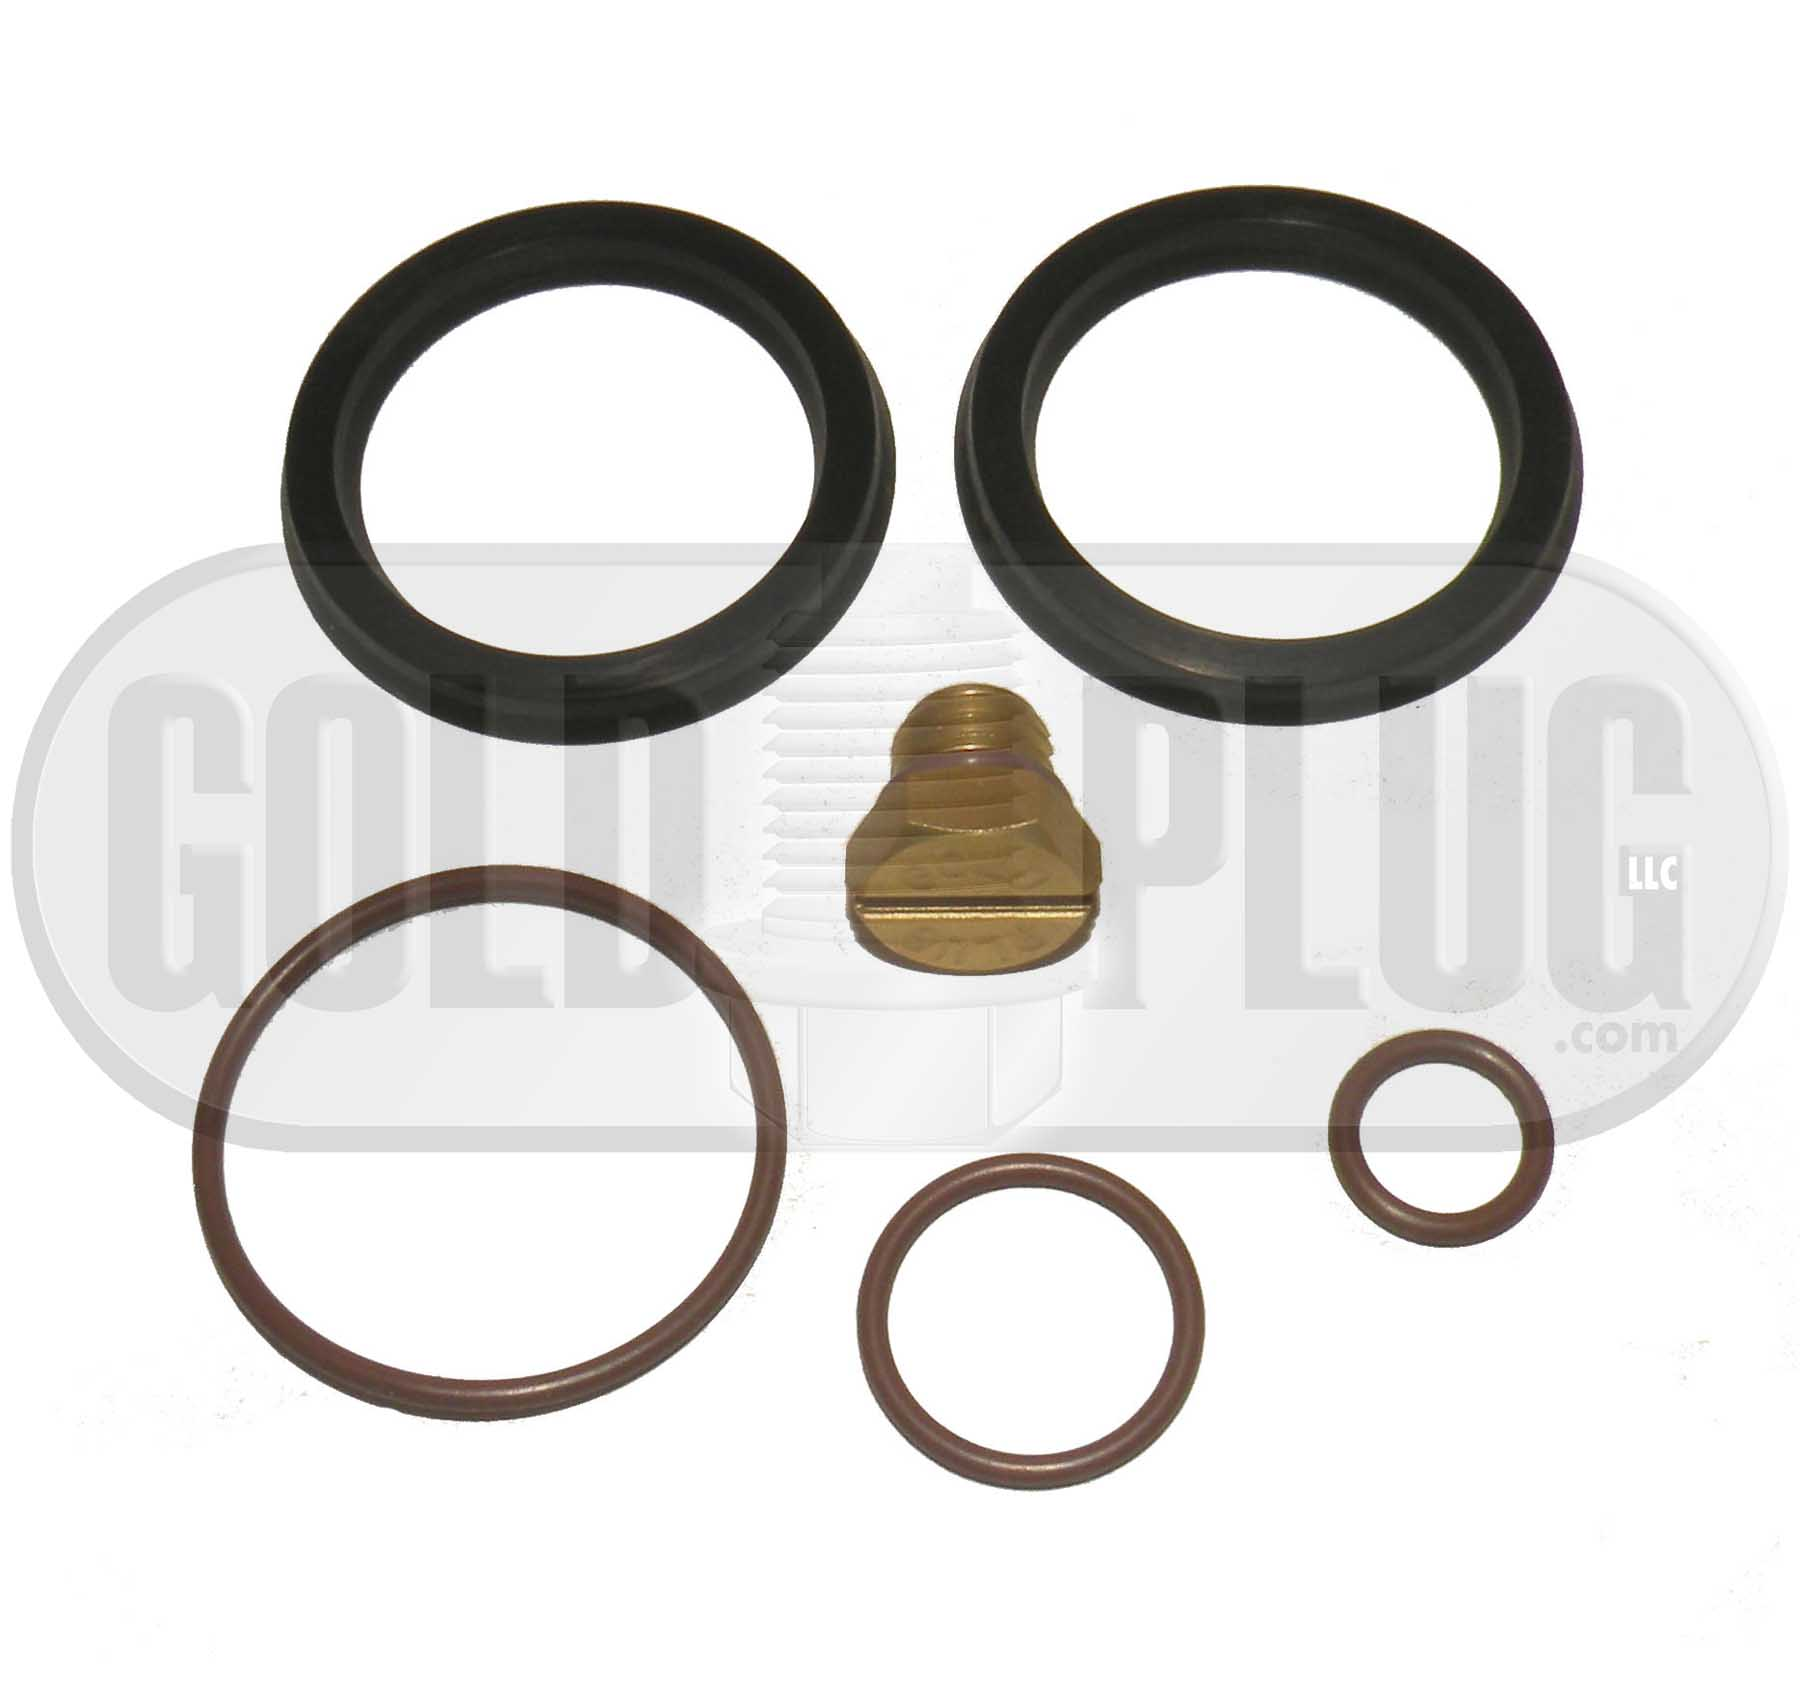 hight resolution of primer fuel filter seal rebuild kit and bleeder screw for 2001 2010 gm duramax fuel filter housing